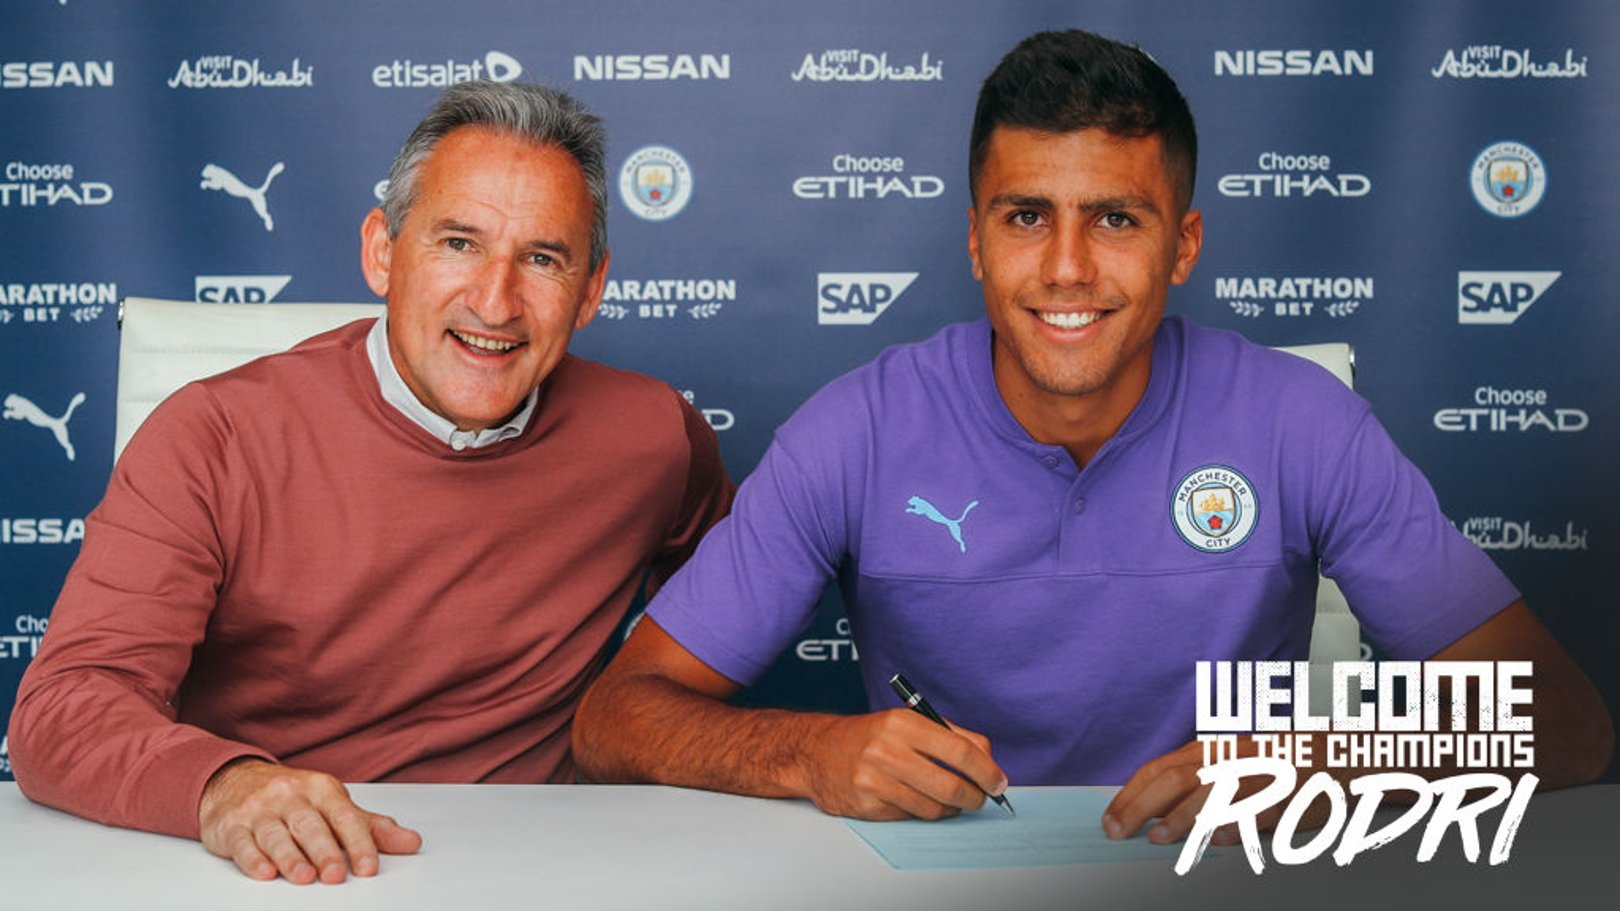 DONE DEAL: City have completed the signing of Rodri from Atletico Madrid